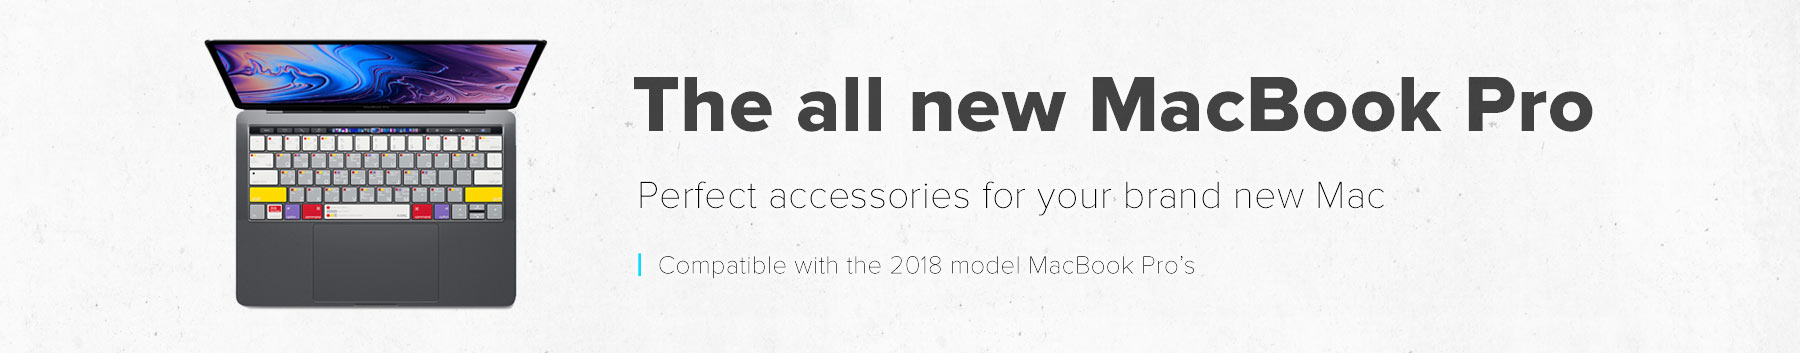 The perfect accessories for the 2018 MacBook Pro